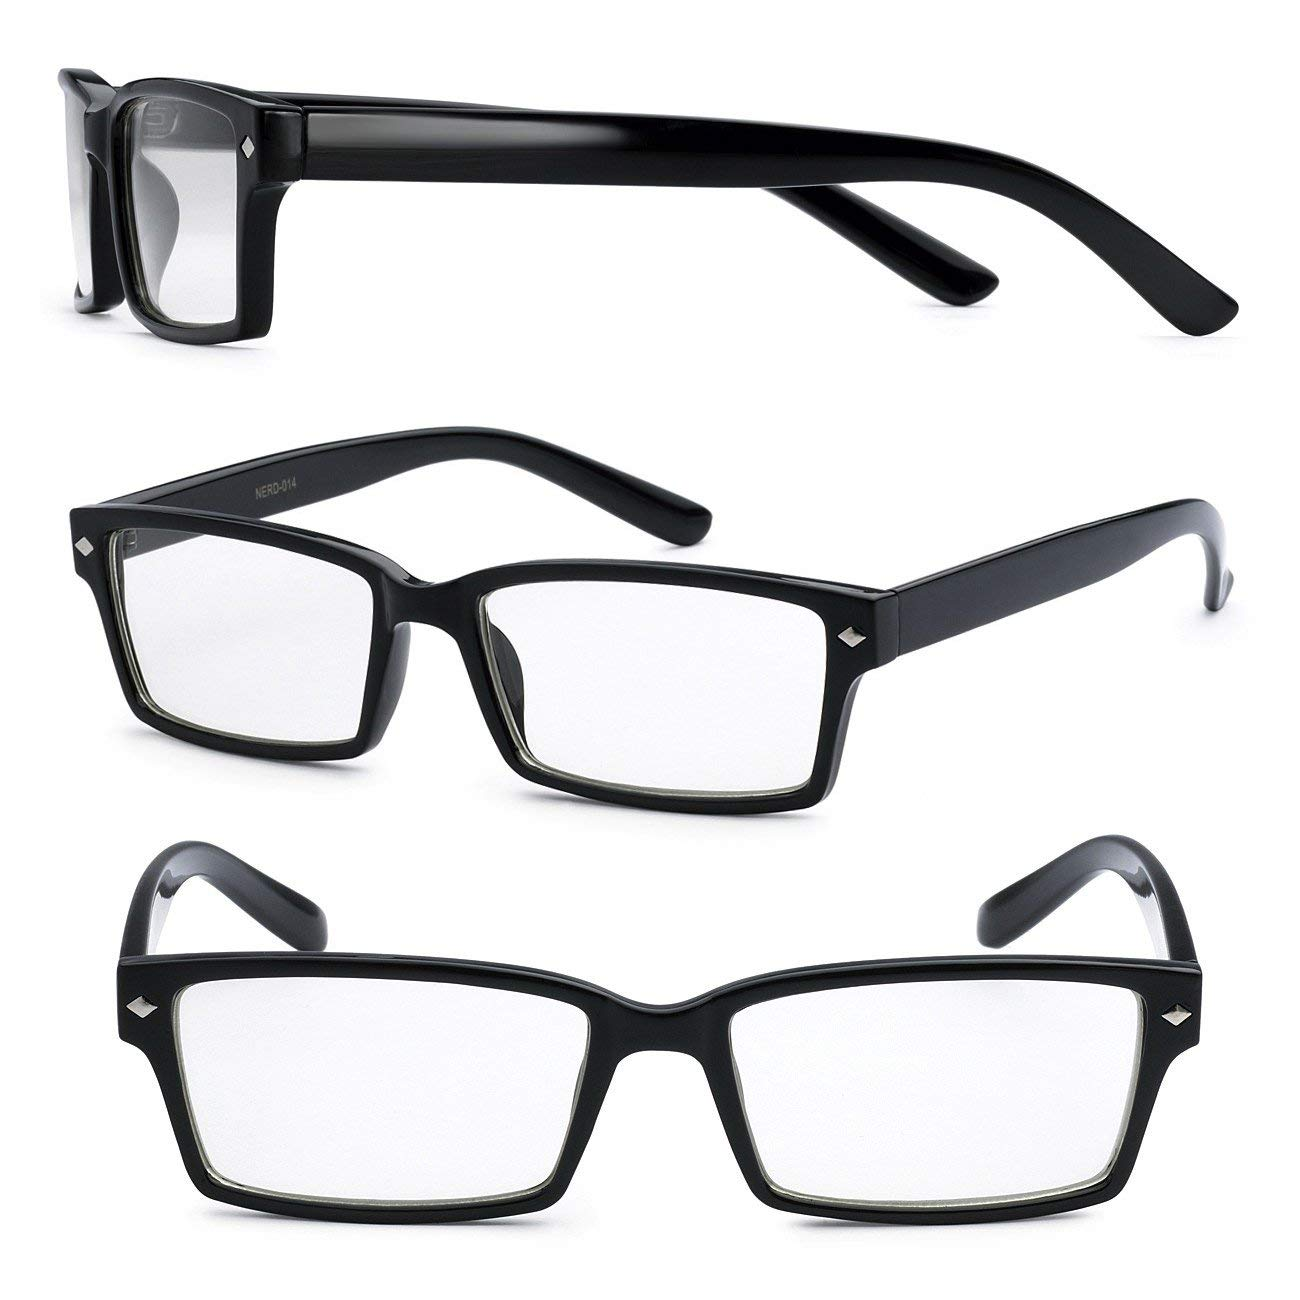 ed764356261 Buy Retro Rectangle Nerd Fake Geek Hero Glasses w  Clear Lens in Cheap  Price on m.alibaba.com